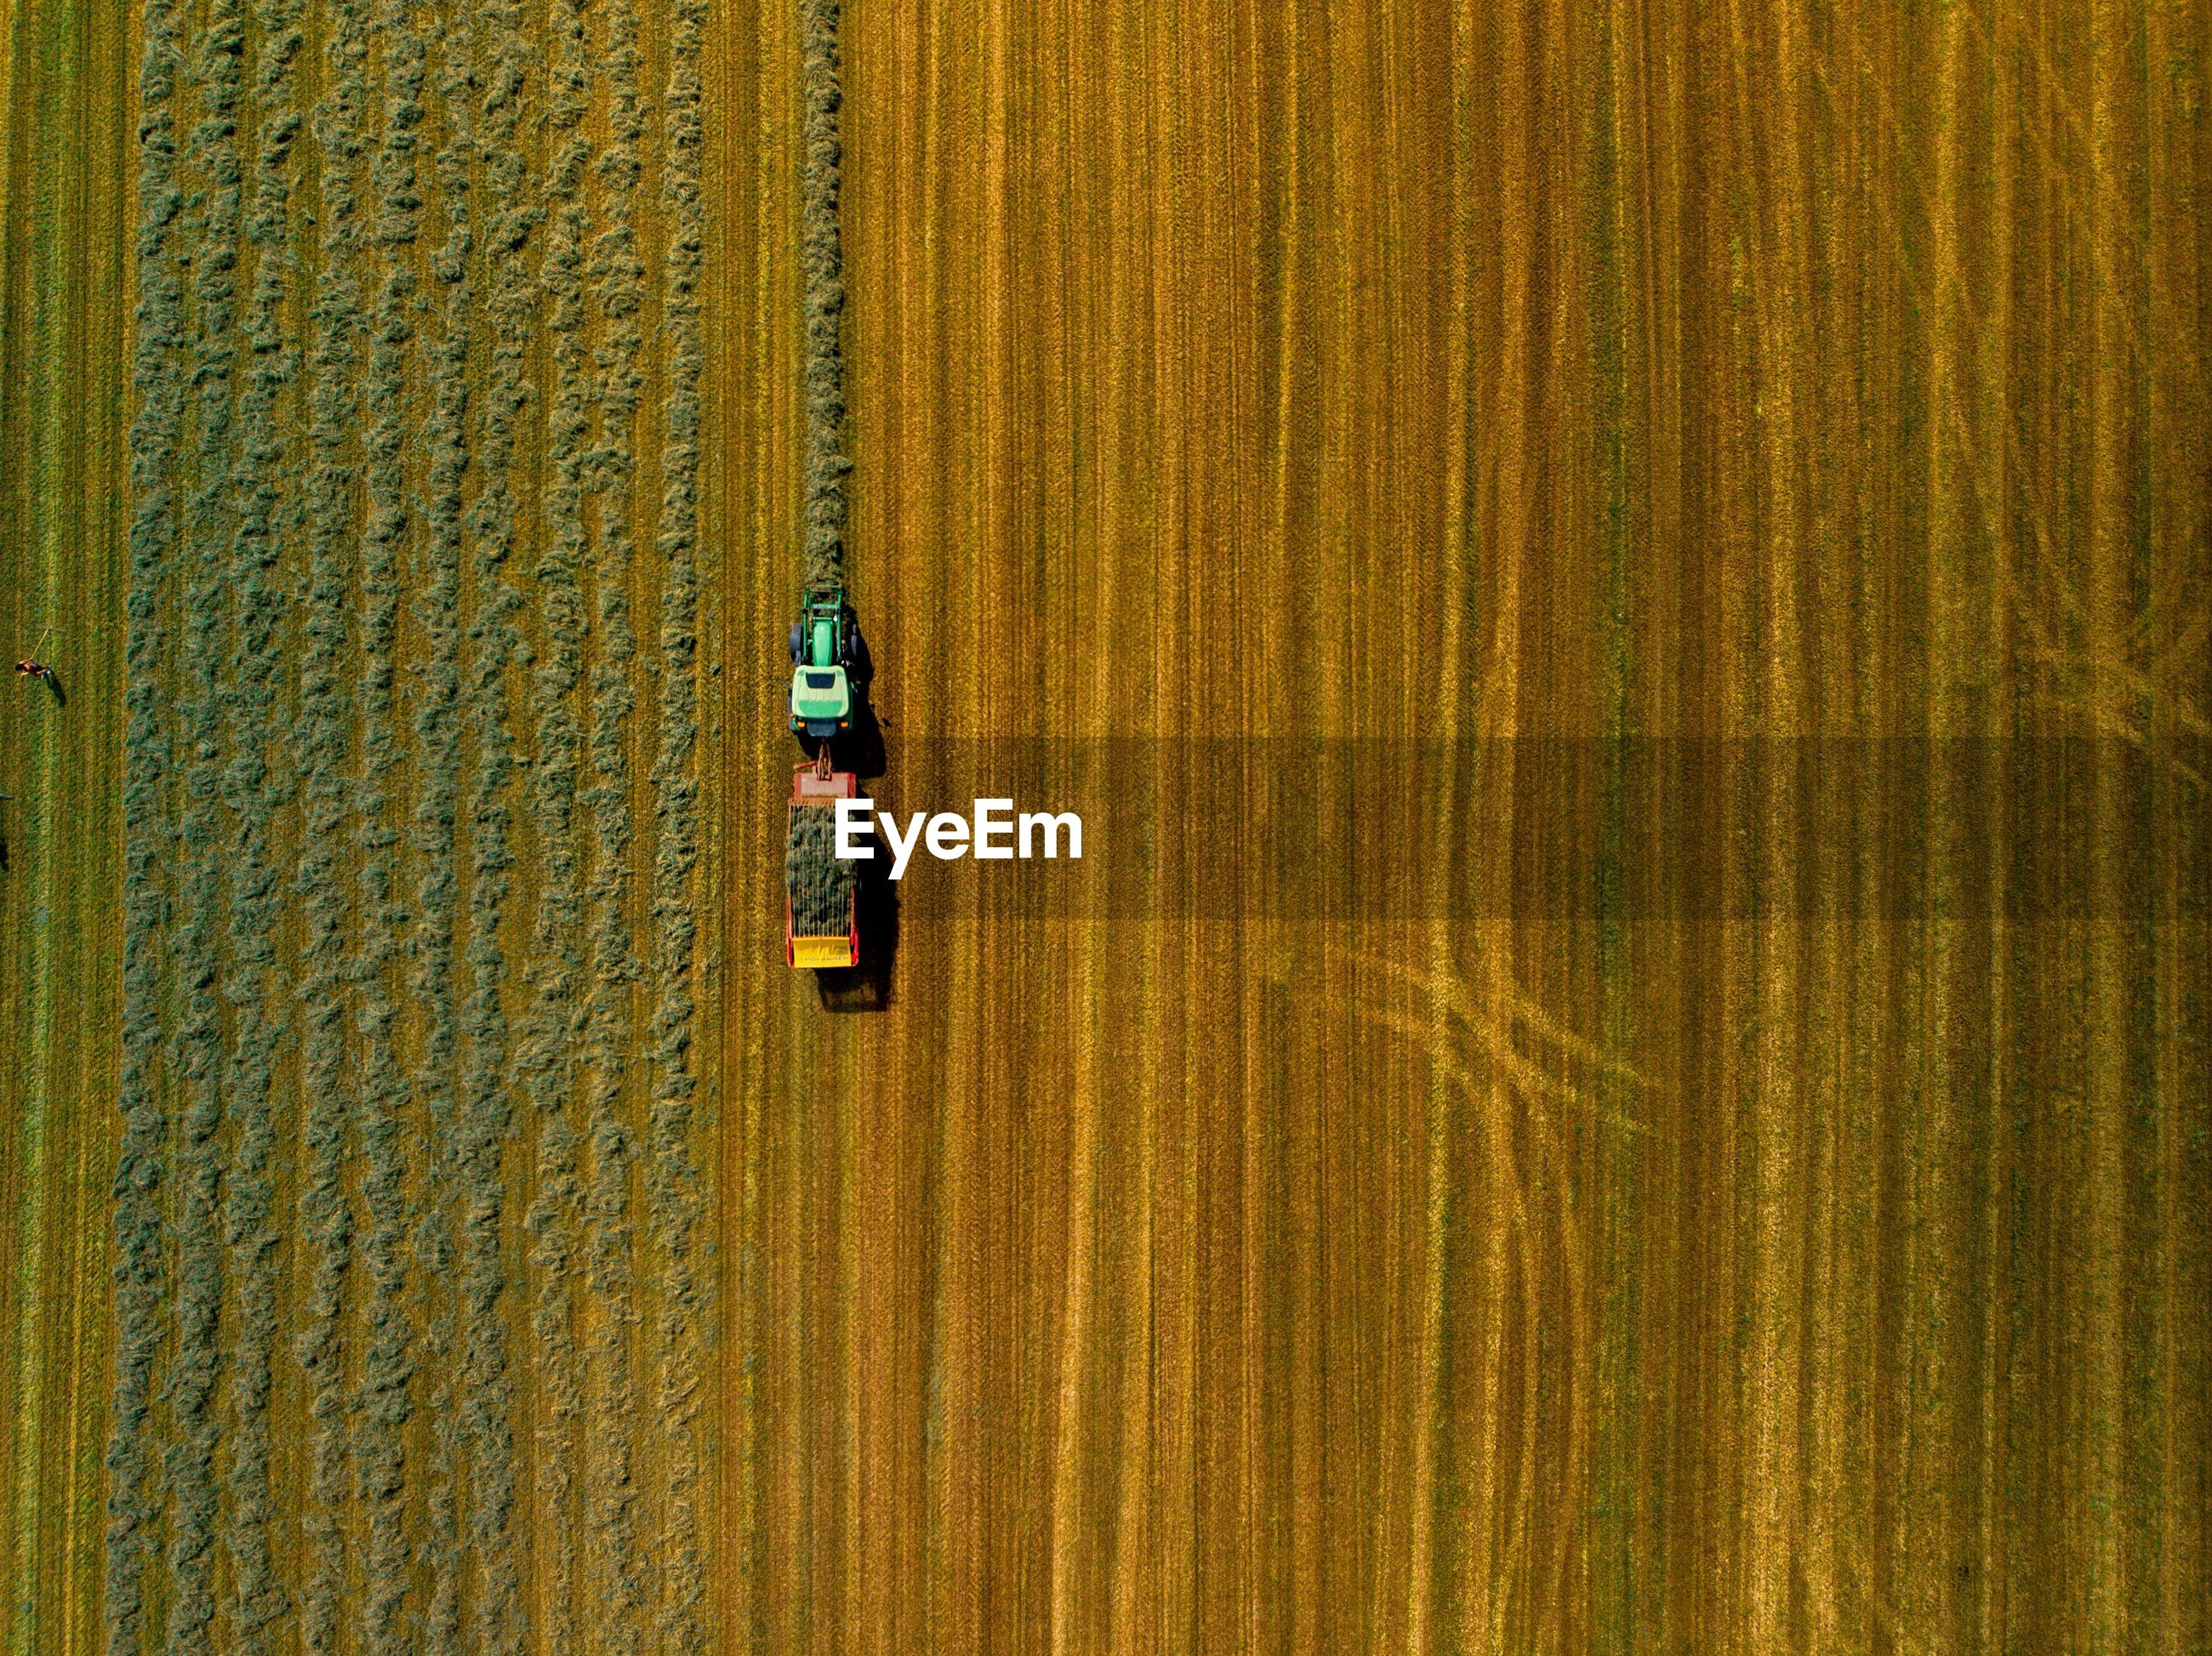 High angle view of tractor on agricultural field